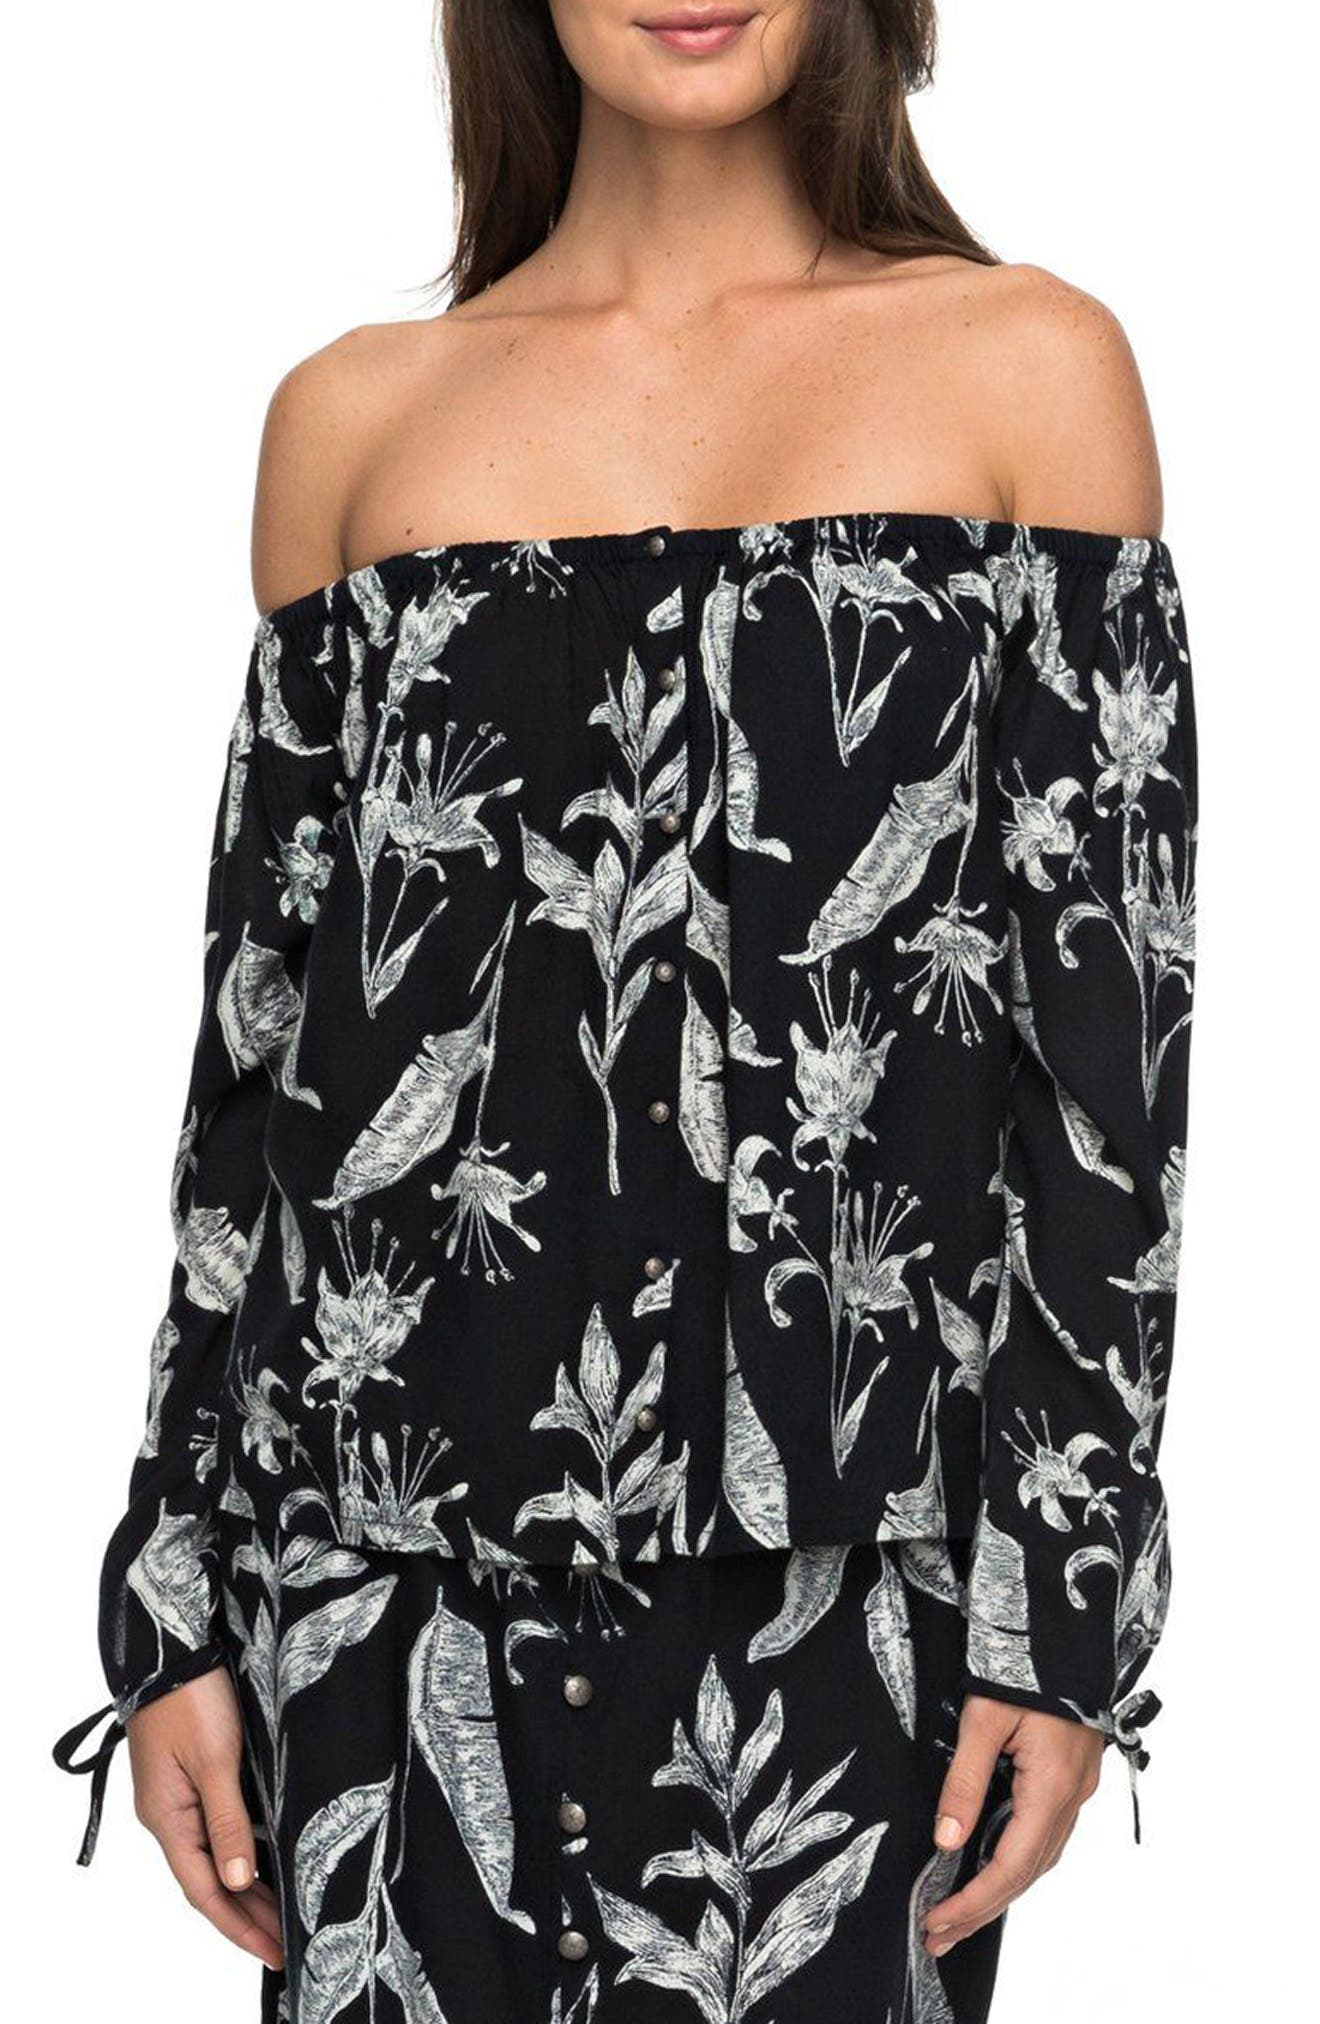 Roxy Print Off the Shoulder Neckline